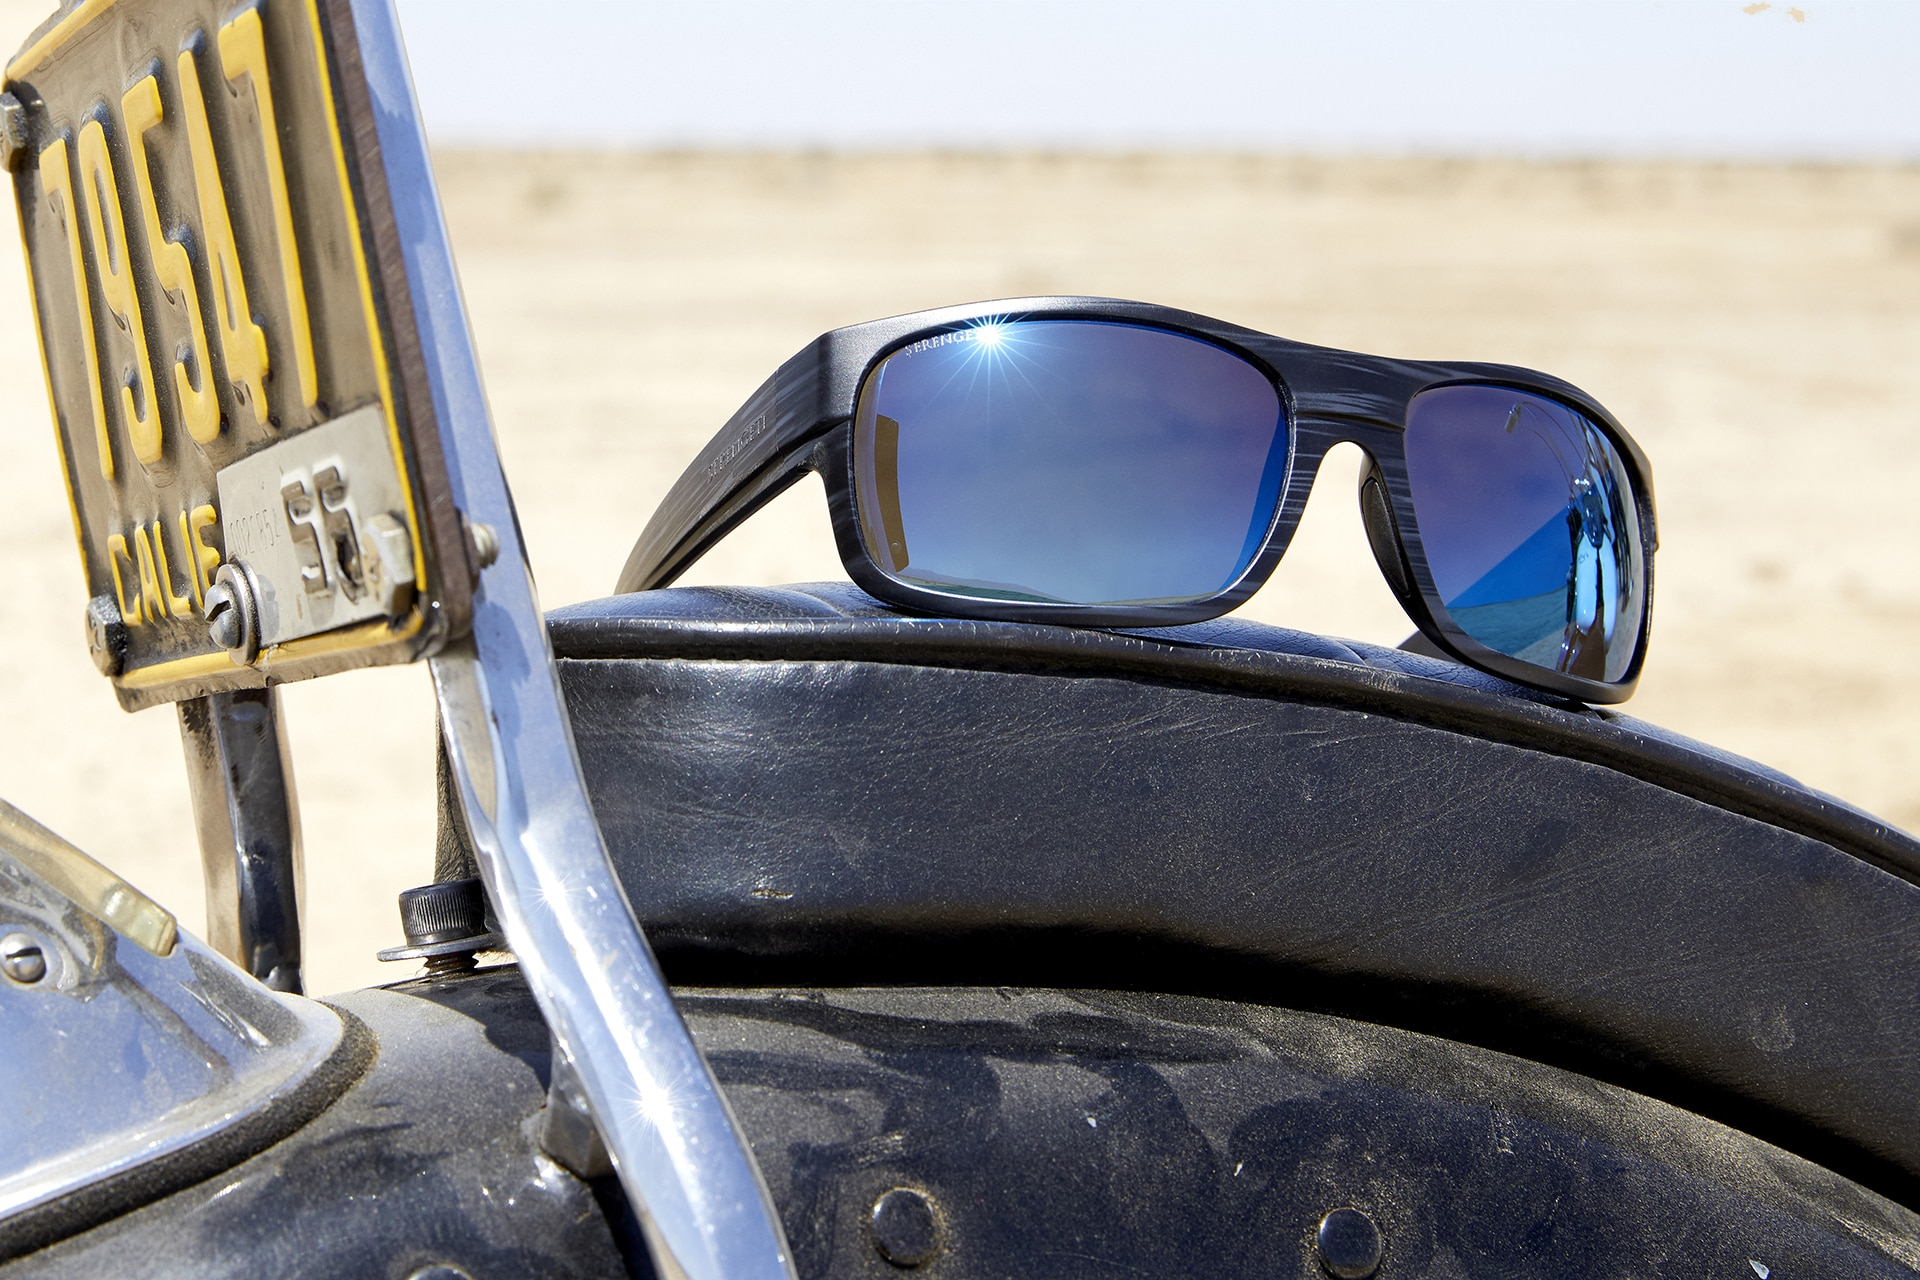 058c2cafbac8 Serengeti Is Your Need To Know Sunglass Brand This Year - GQ